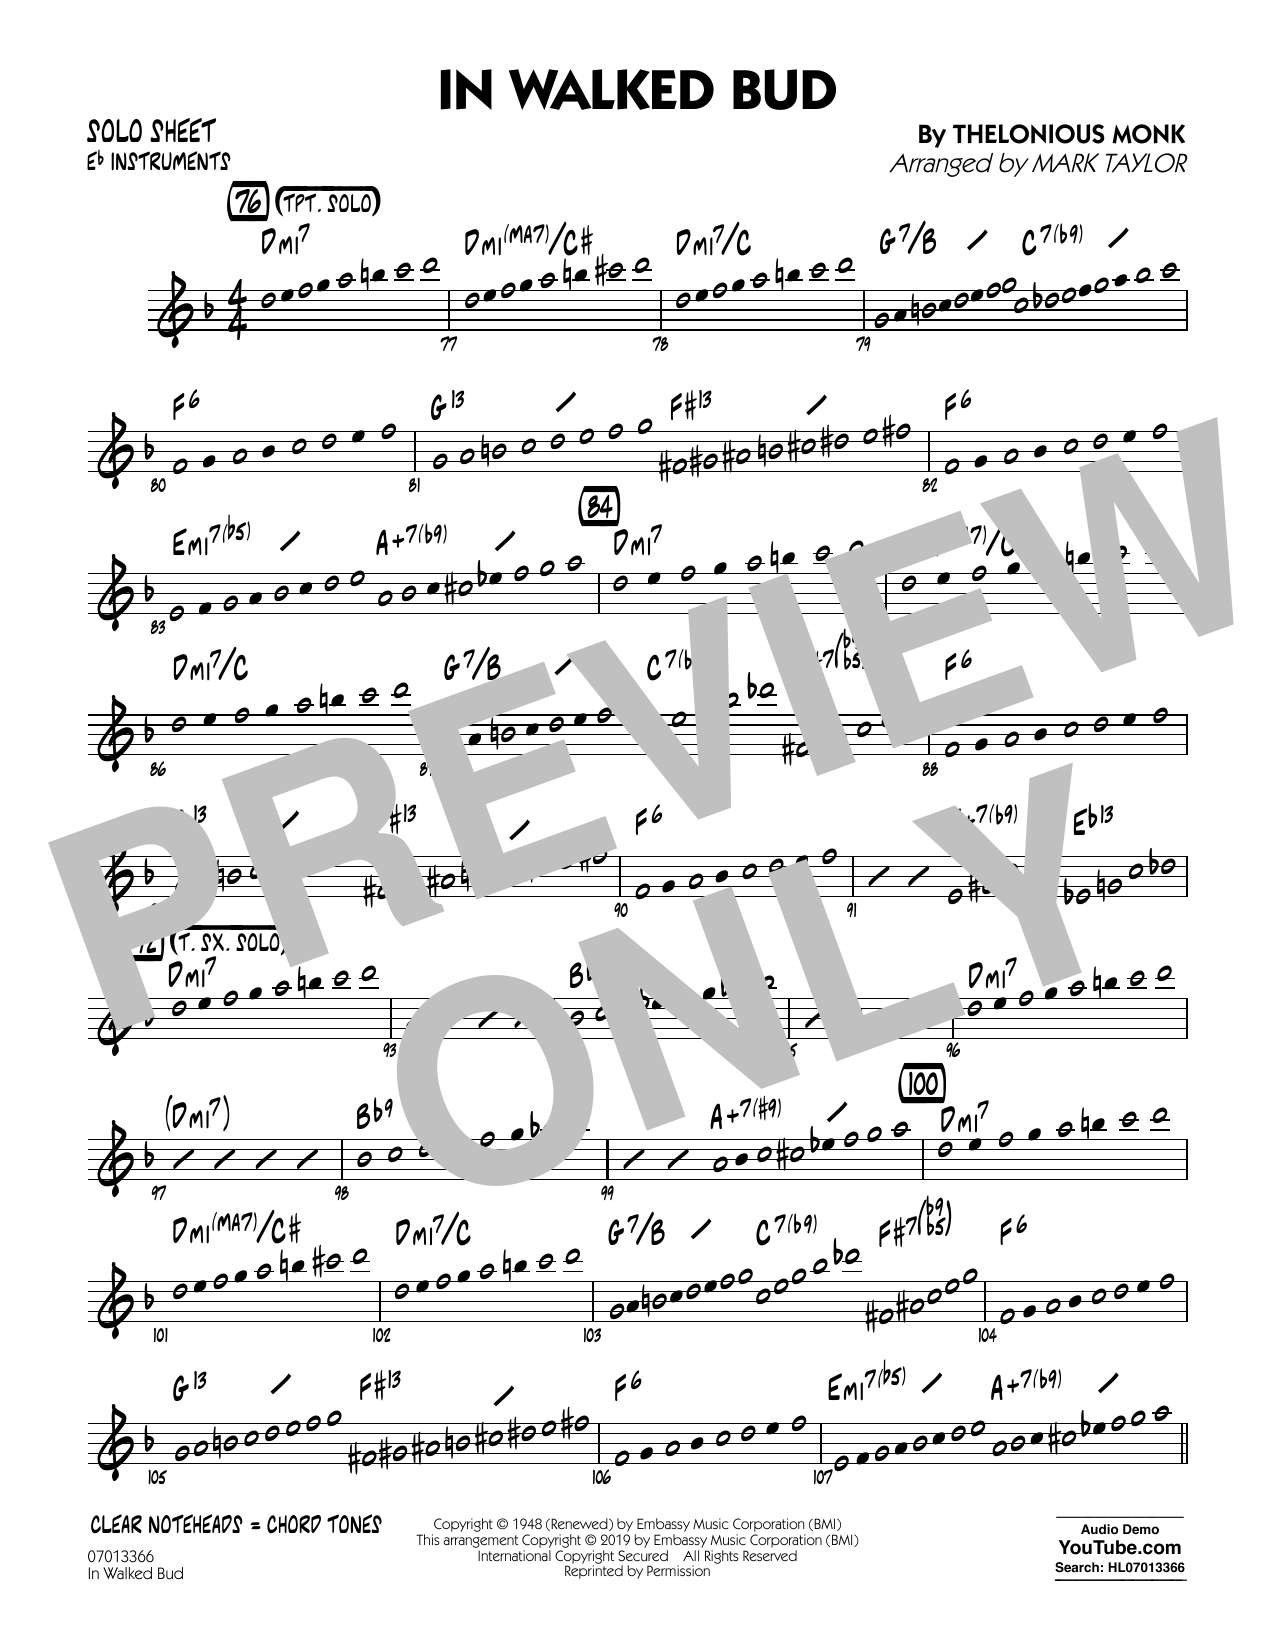 Thelonious Monk In Walked Bud (arr. Mark Taylor) - Eb Solo Sheet sheet music notes and chords. Download Printable PDF.